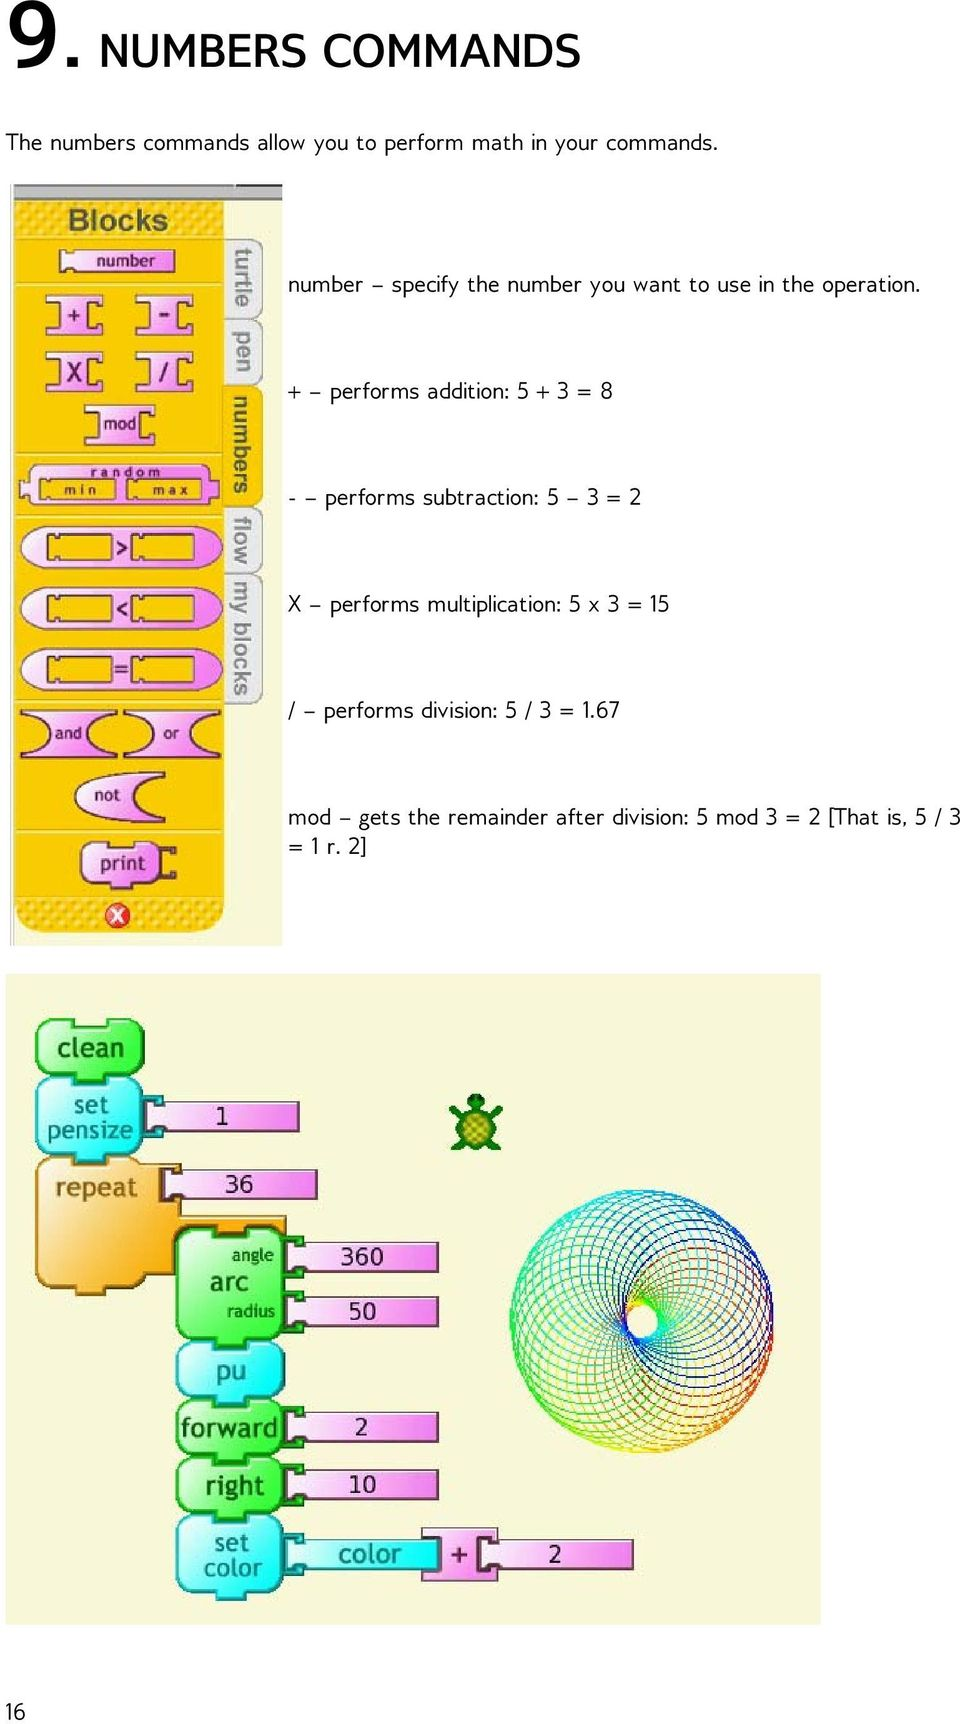 + performs addition: 5 + 3 = 8 - performs subtraction: 5 3 = 2 X performs multiplication: